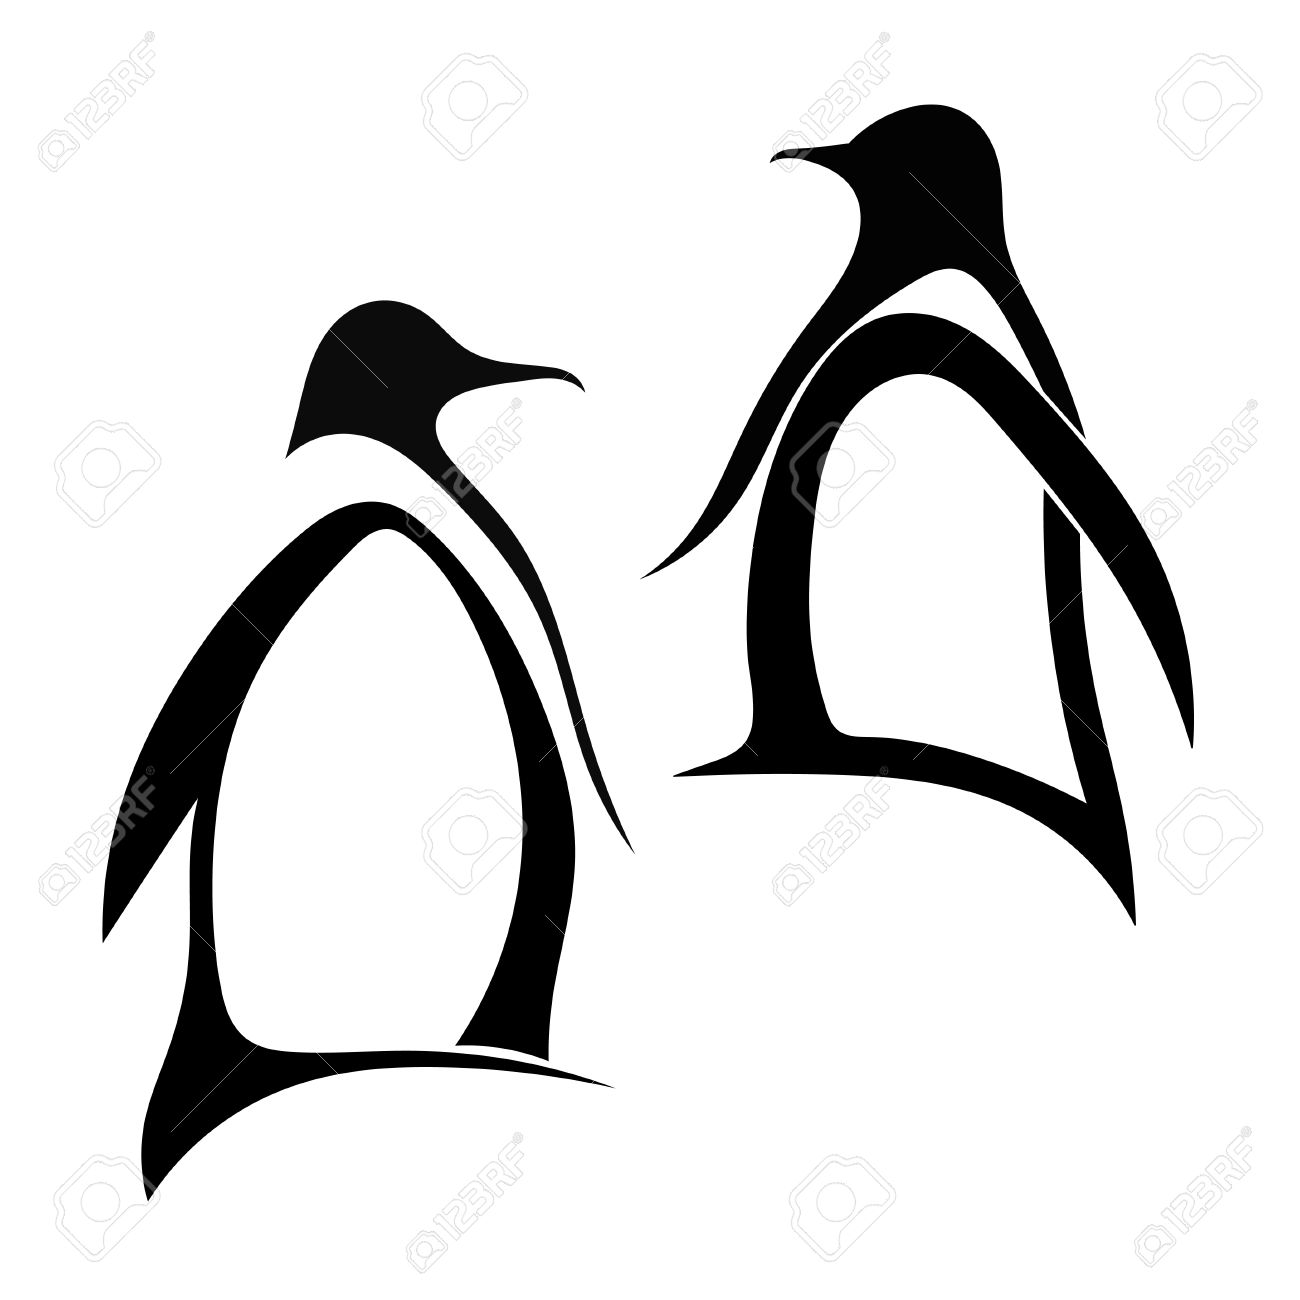 1 186 emperor penguin cliparts stock vector and royalty free